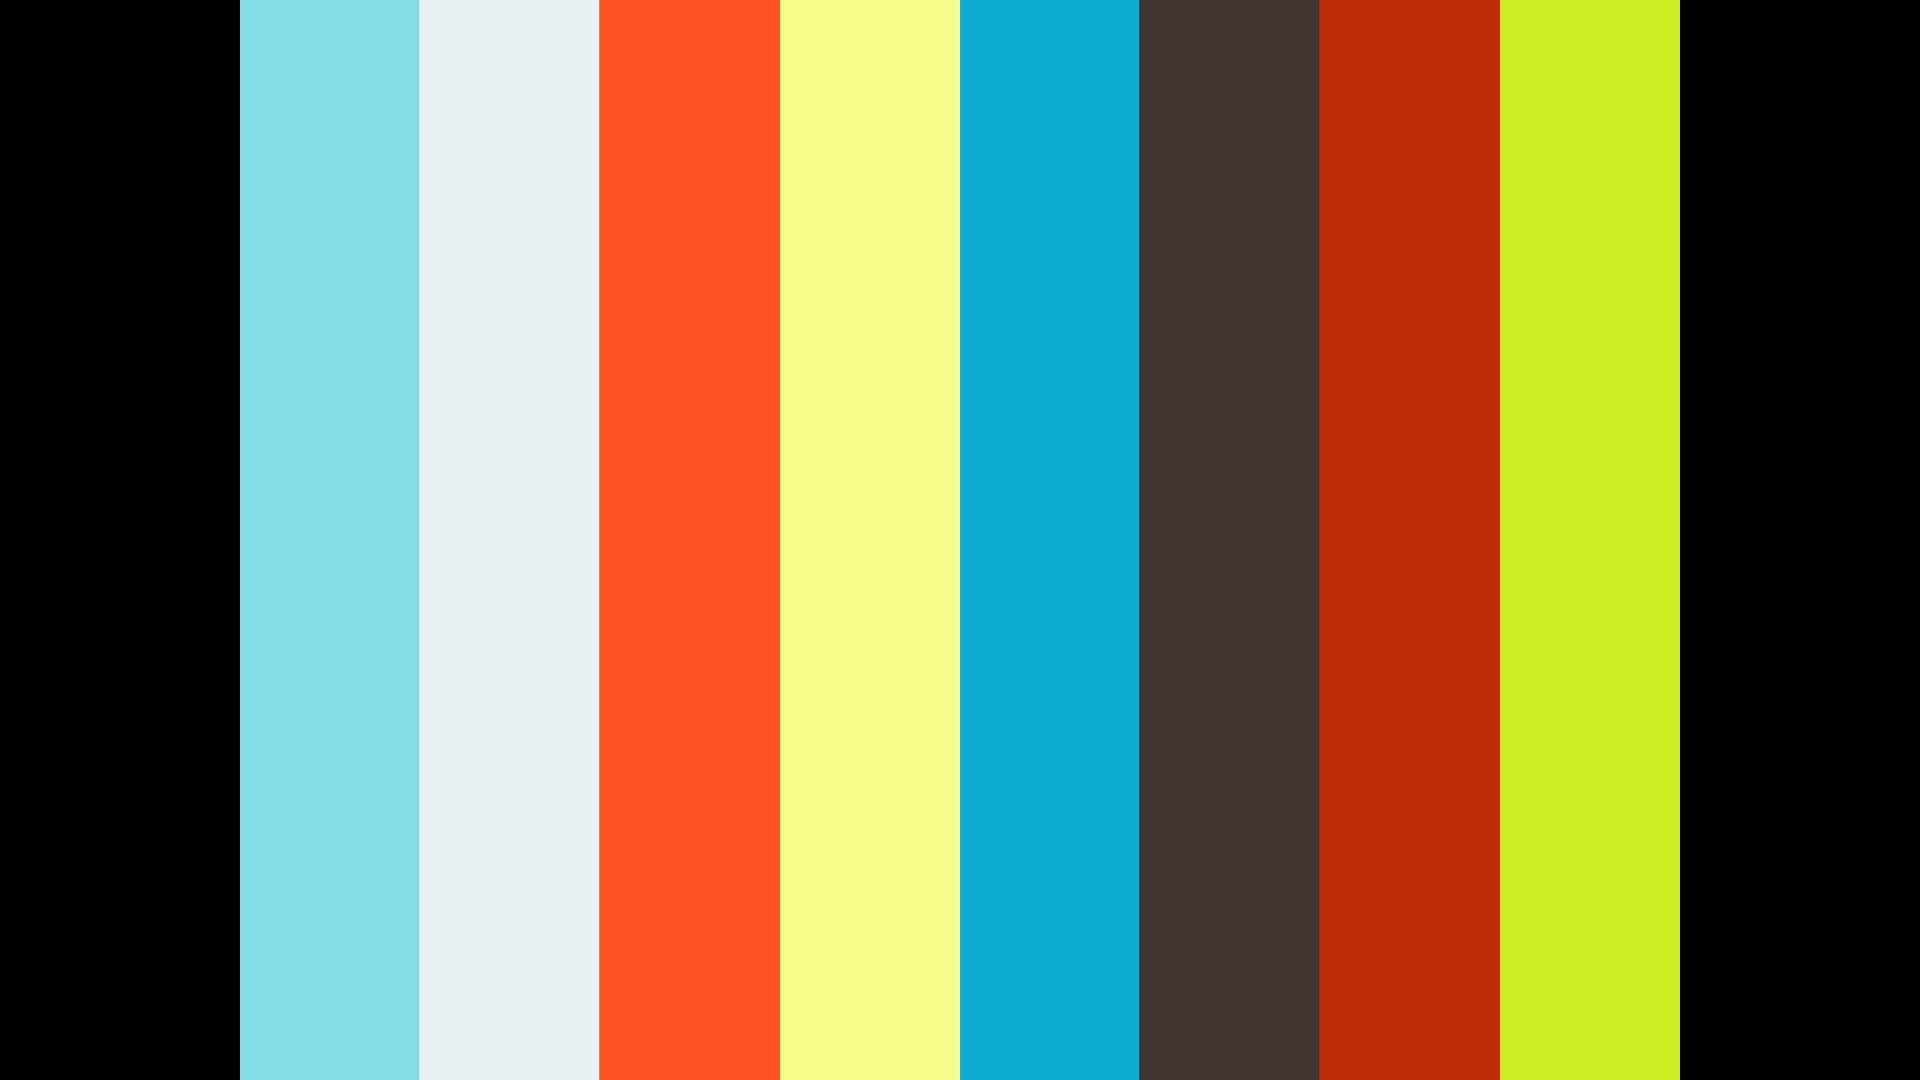 Second Quarter Commentary on Financial Markets - July 10, 2018